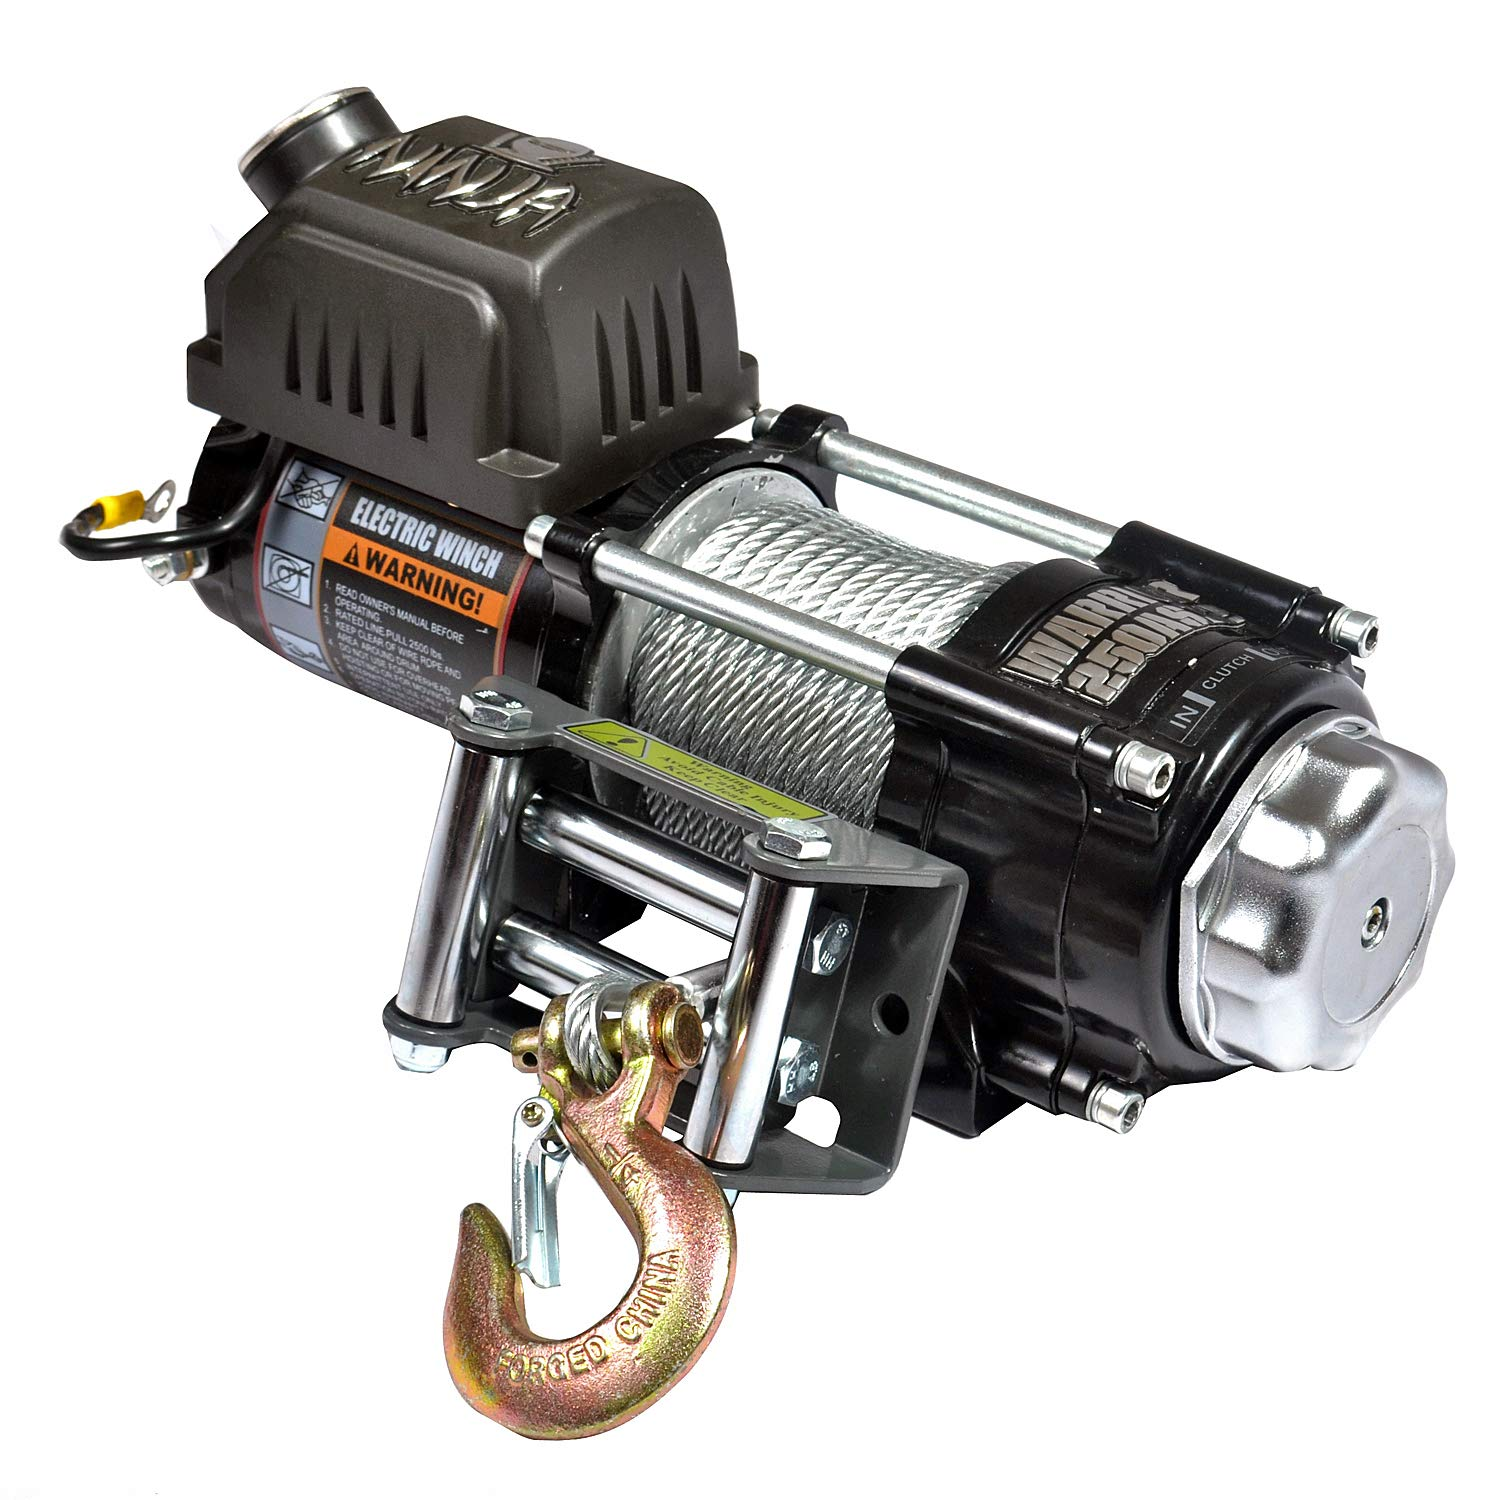 Warrior WW25SPS24 ATV/UTV Quad Elektrische Seilwinde Ninja 2500LB A 1, 1 t 24 V Winch Solutions Ltd.